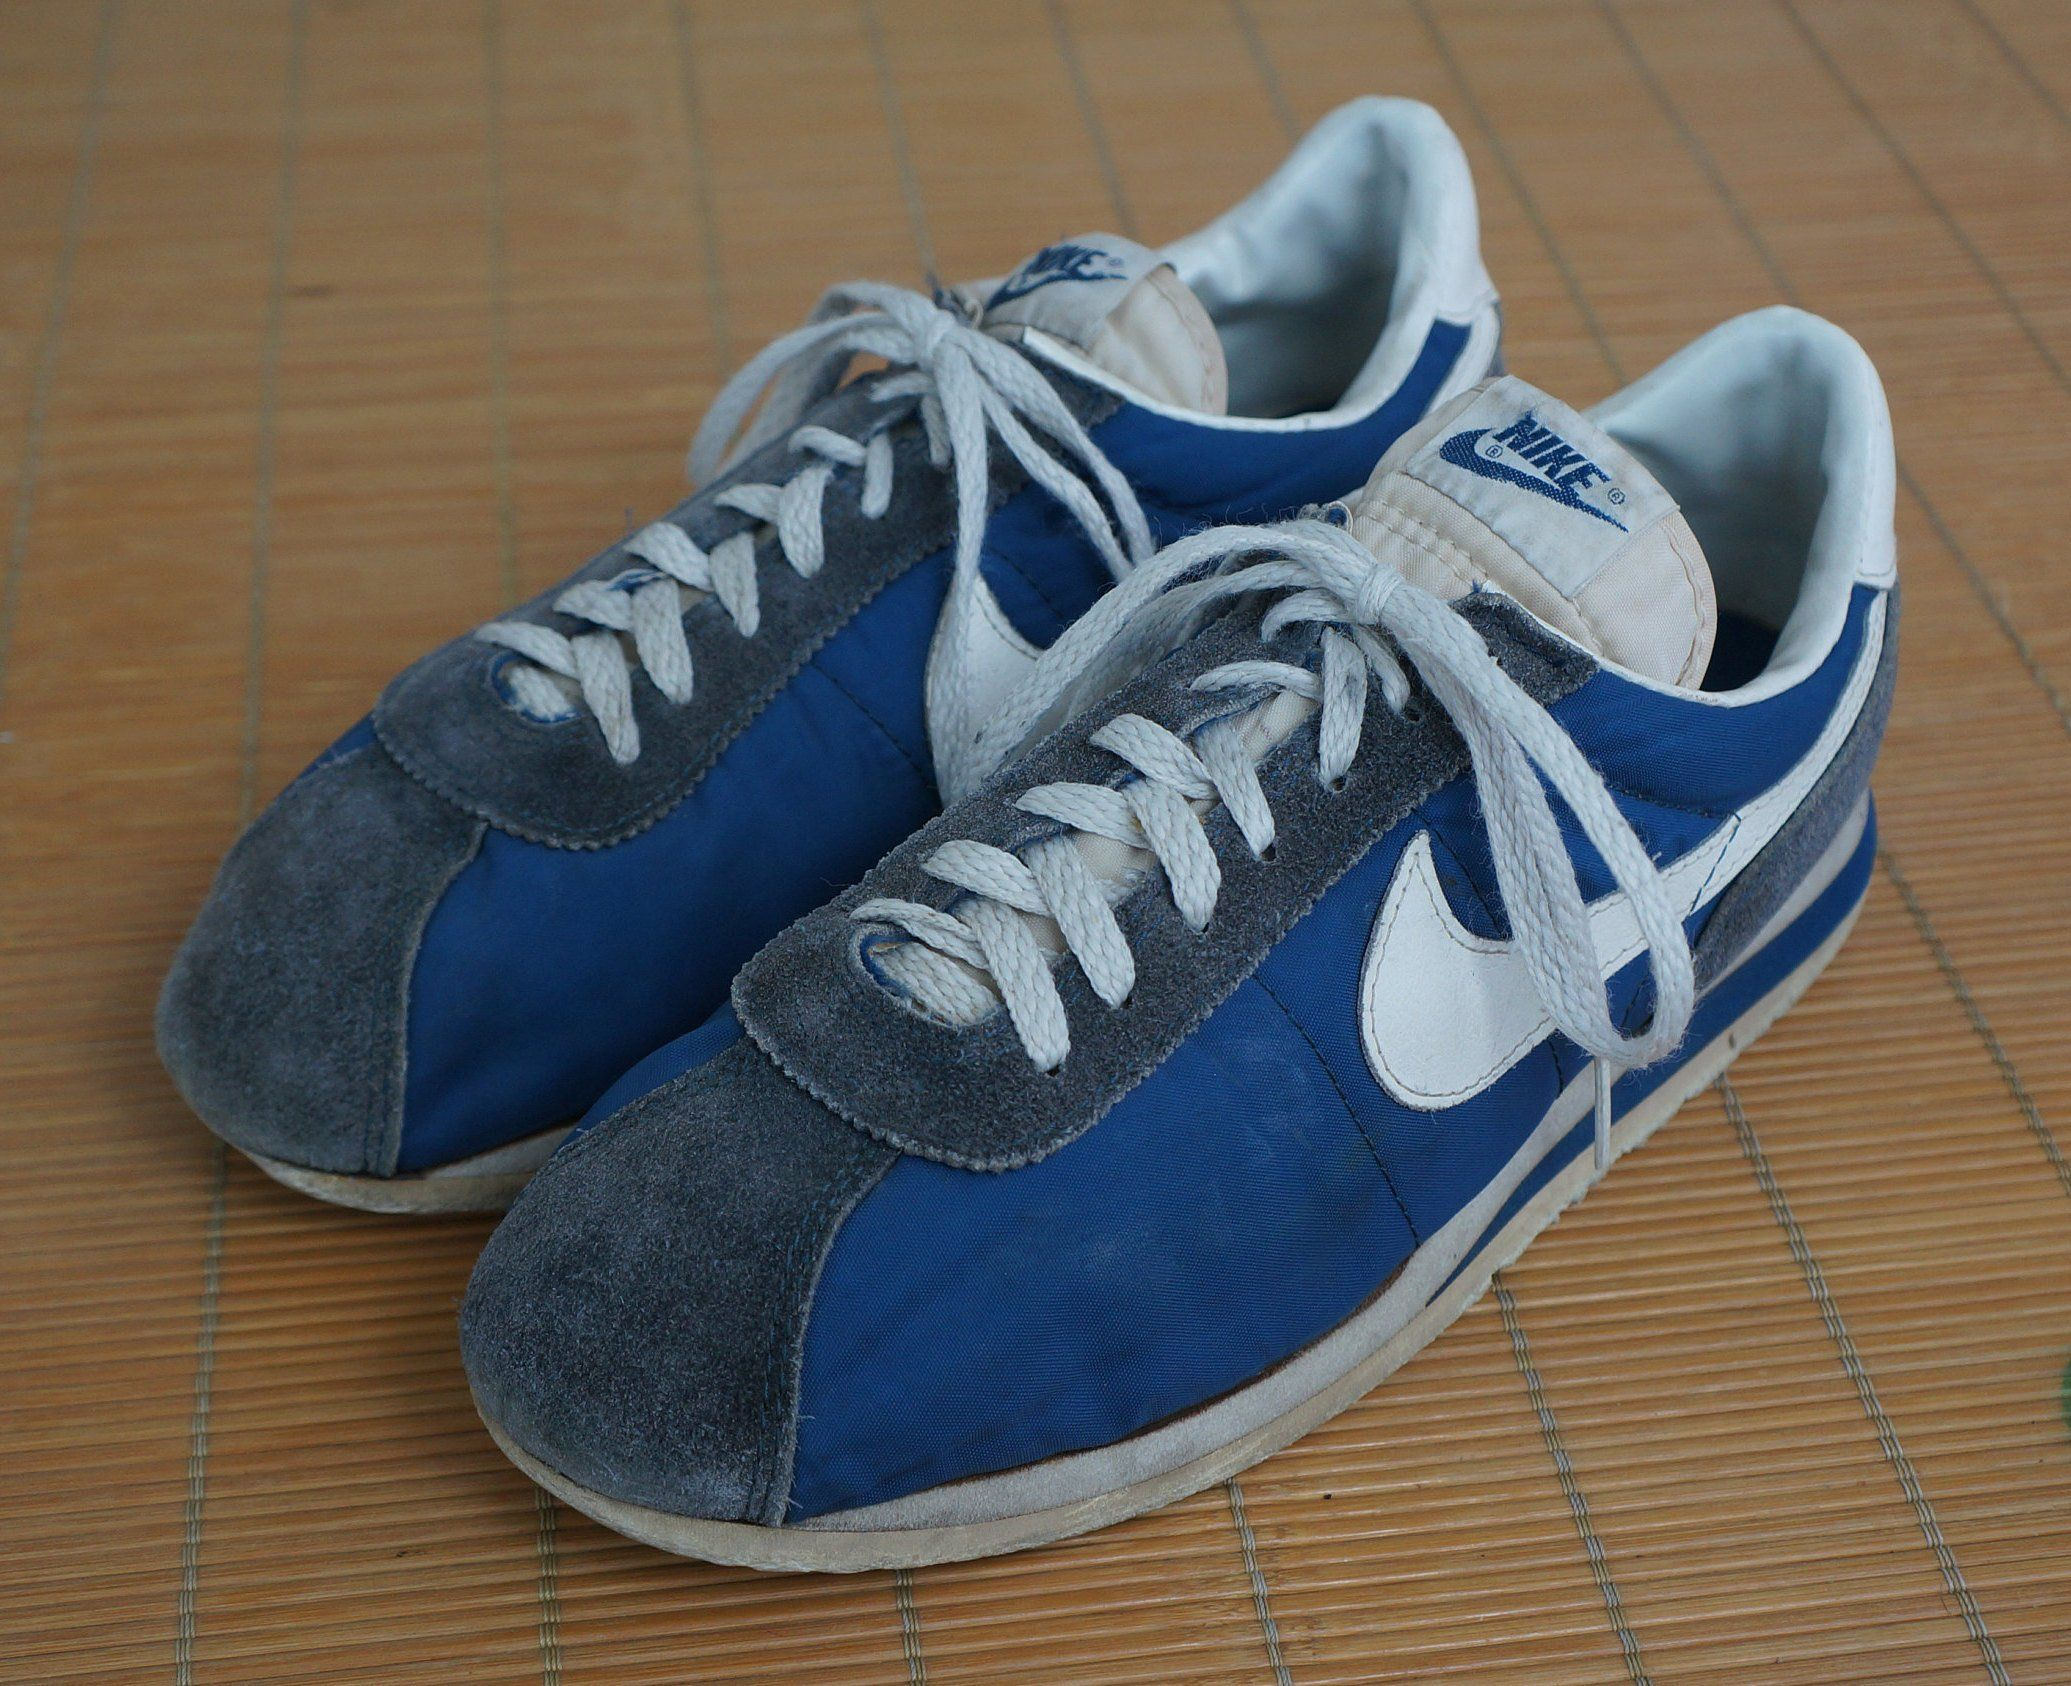 super popular 74966 c09e5 Vintage Nike Cortez Suede Blue Gray White Swoosh Shoes ...